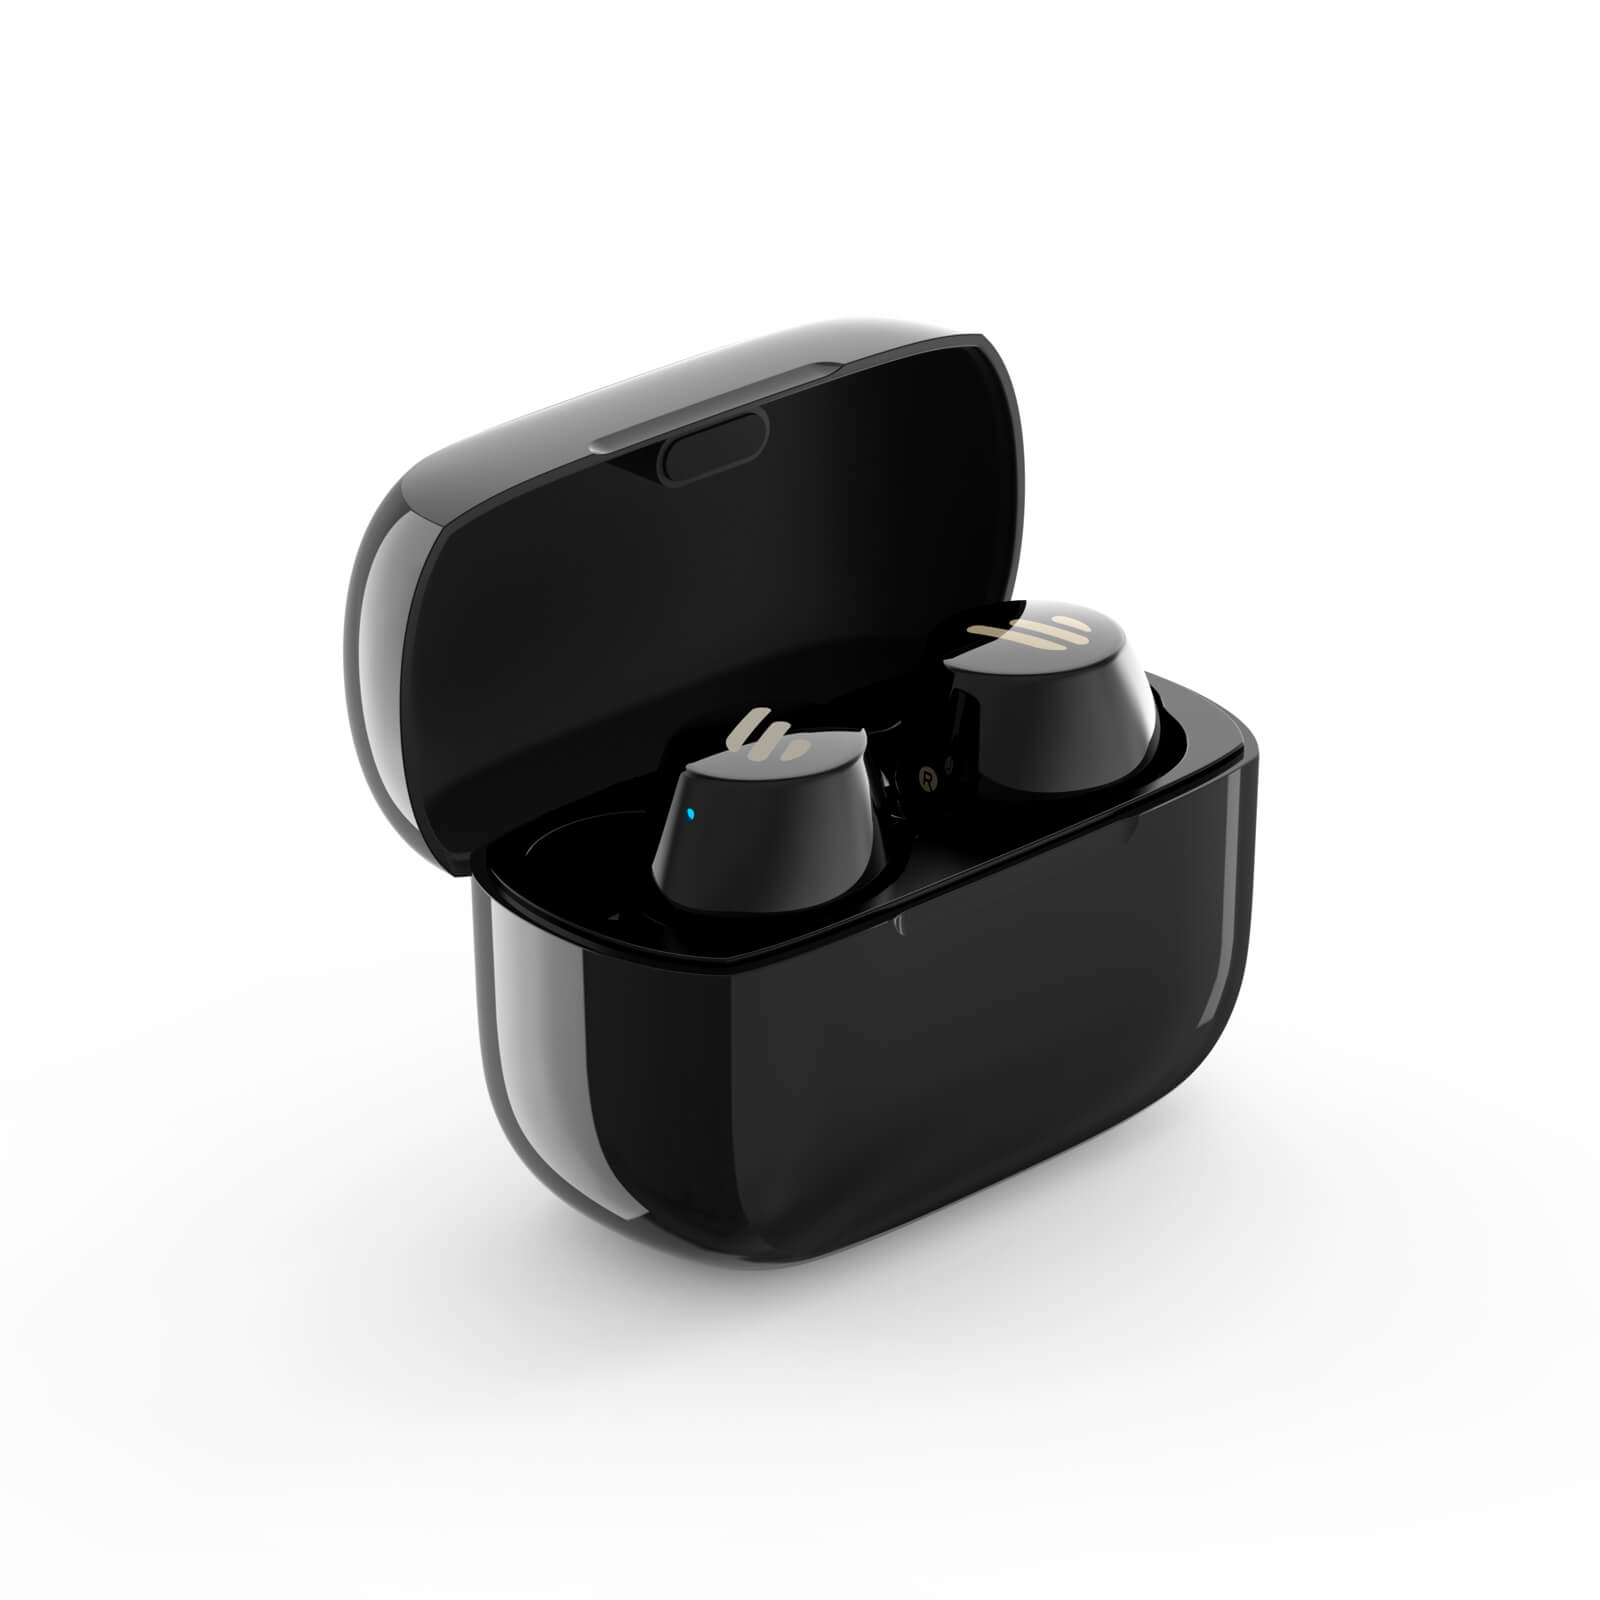 EDIFIER TWS1 Bluetooth V5.0 True Wireless Stereo Earbuds Features Review